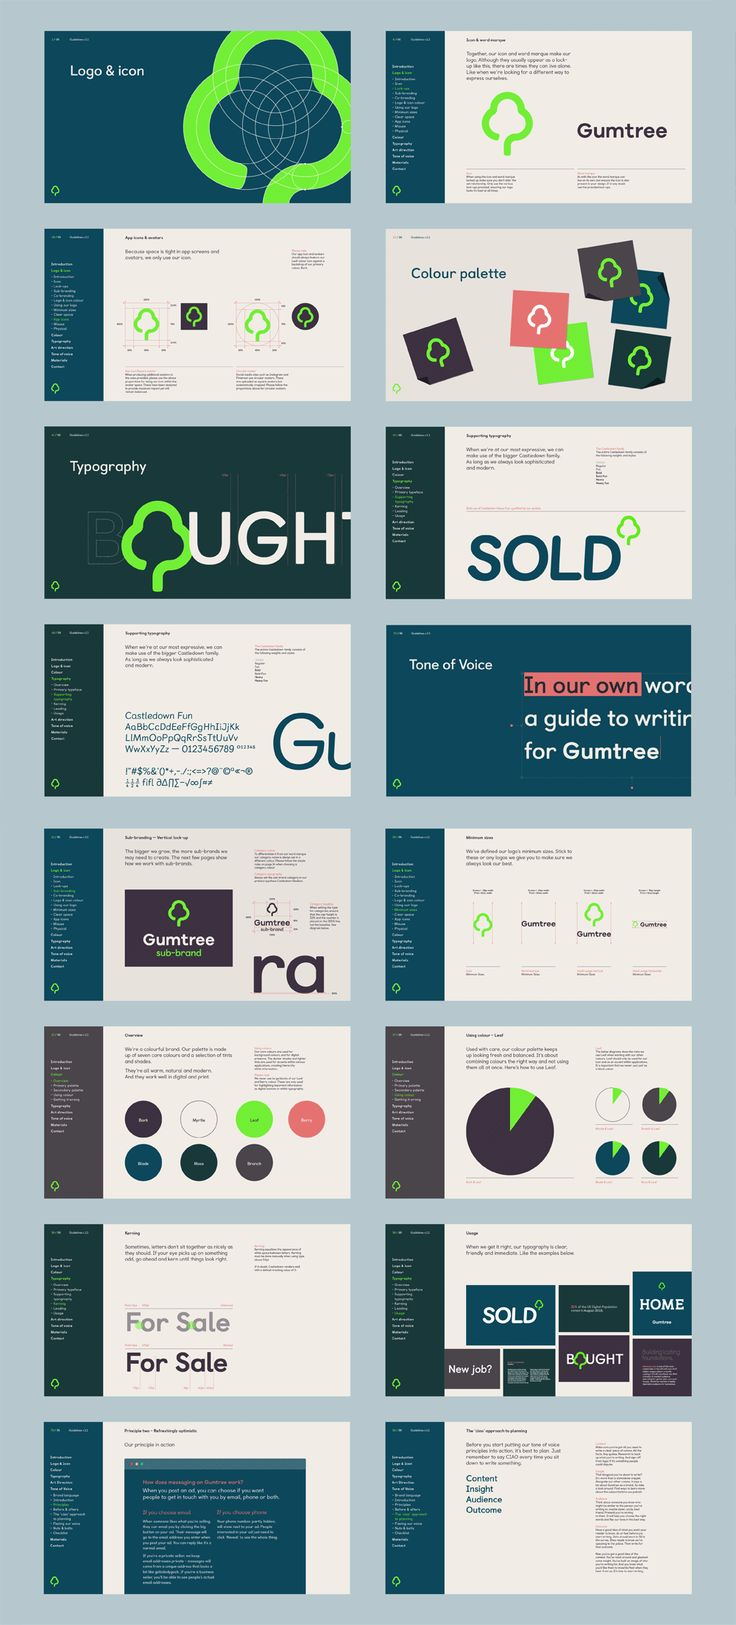 Poster design guidelines - New Logo And Identity For Gumtree By Koto